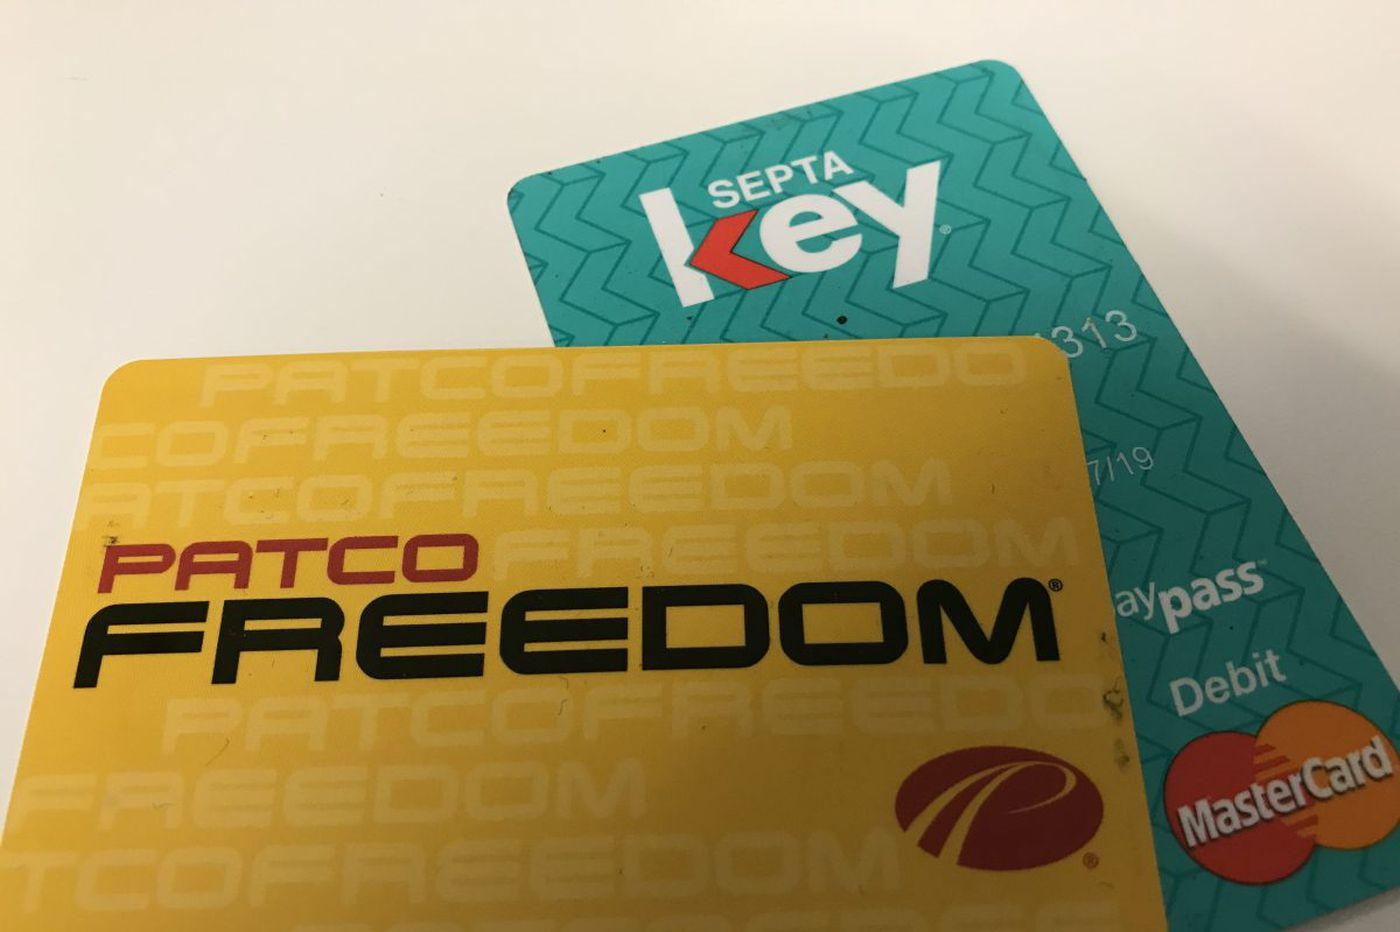 SEPTA's Key card readers will soon accept new PATCO fare cards